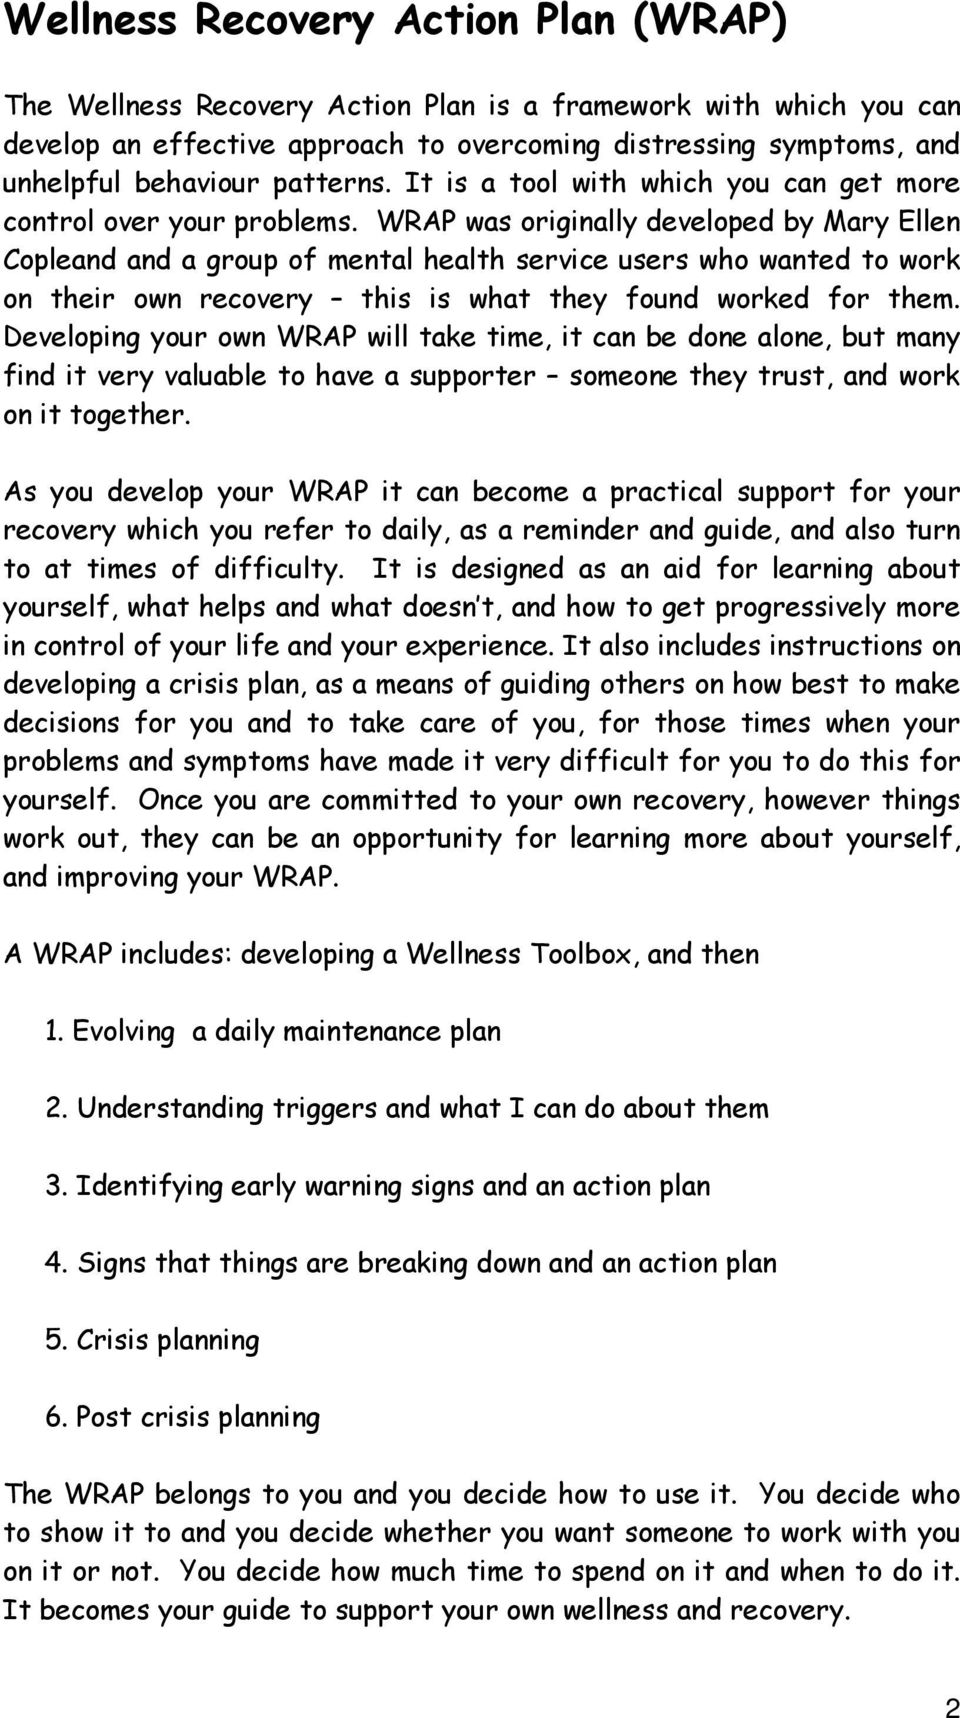 WRAP was originally developed by Mary Ellen Copleand and a group of mental health service users who wanted to work on their own recovery this is what they found worked for them.